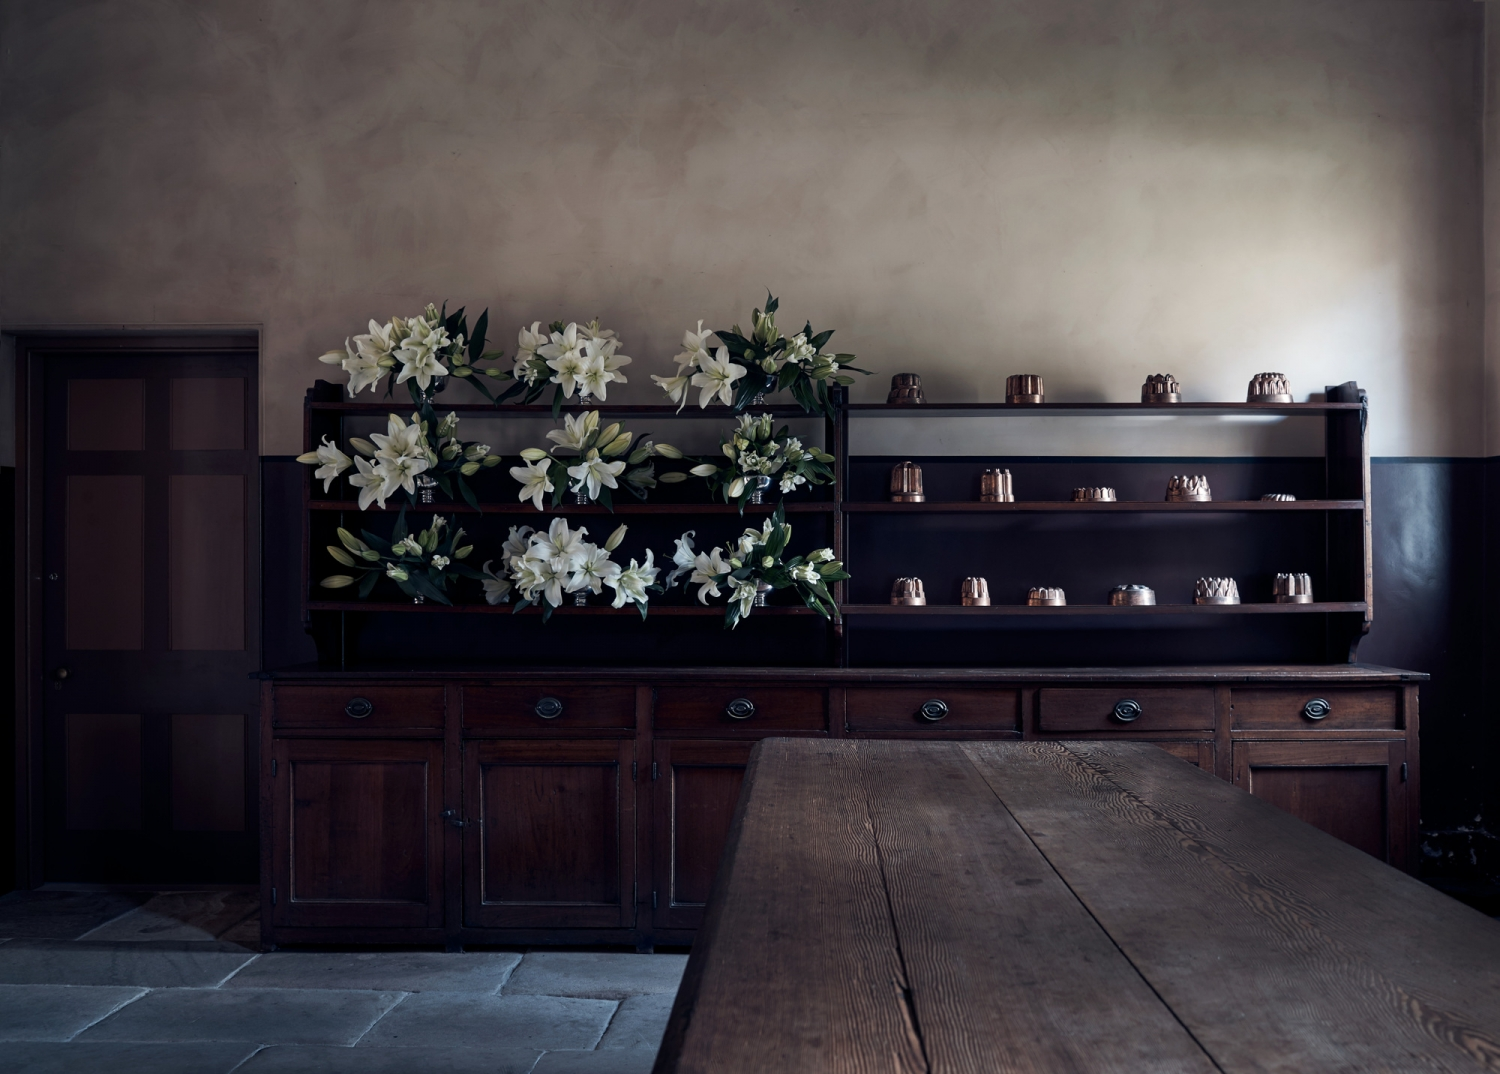 The buffet in the Vaucluse House kitchen featuring lillies by Dr Lisa Cooper